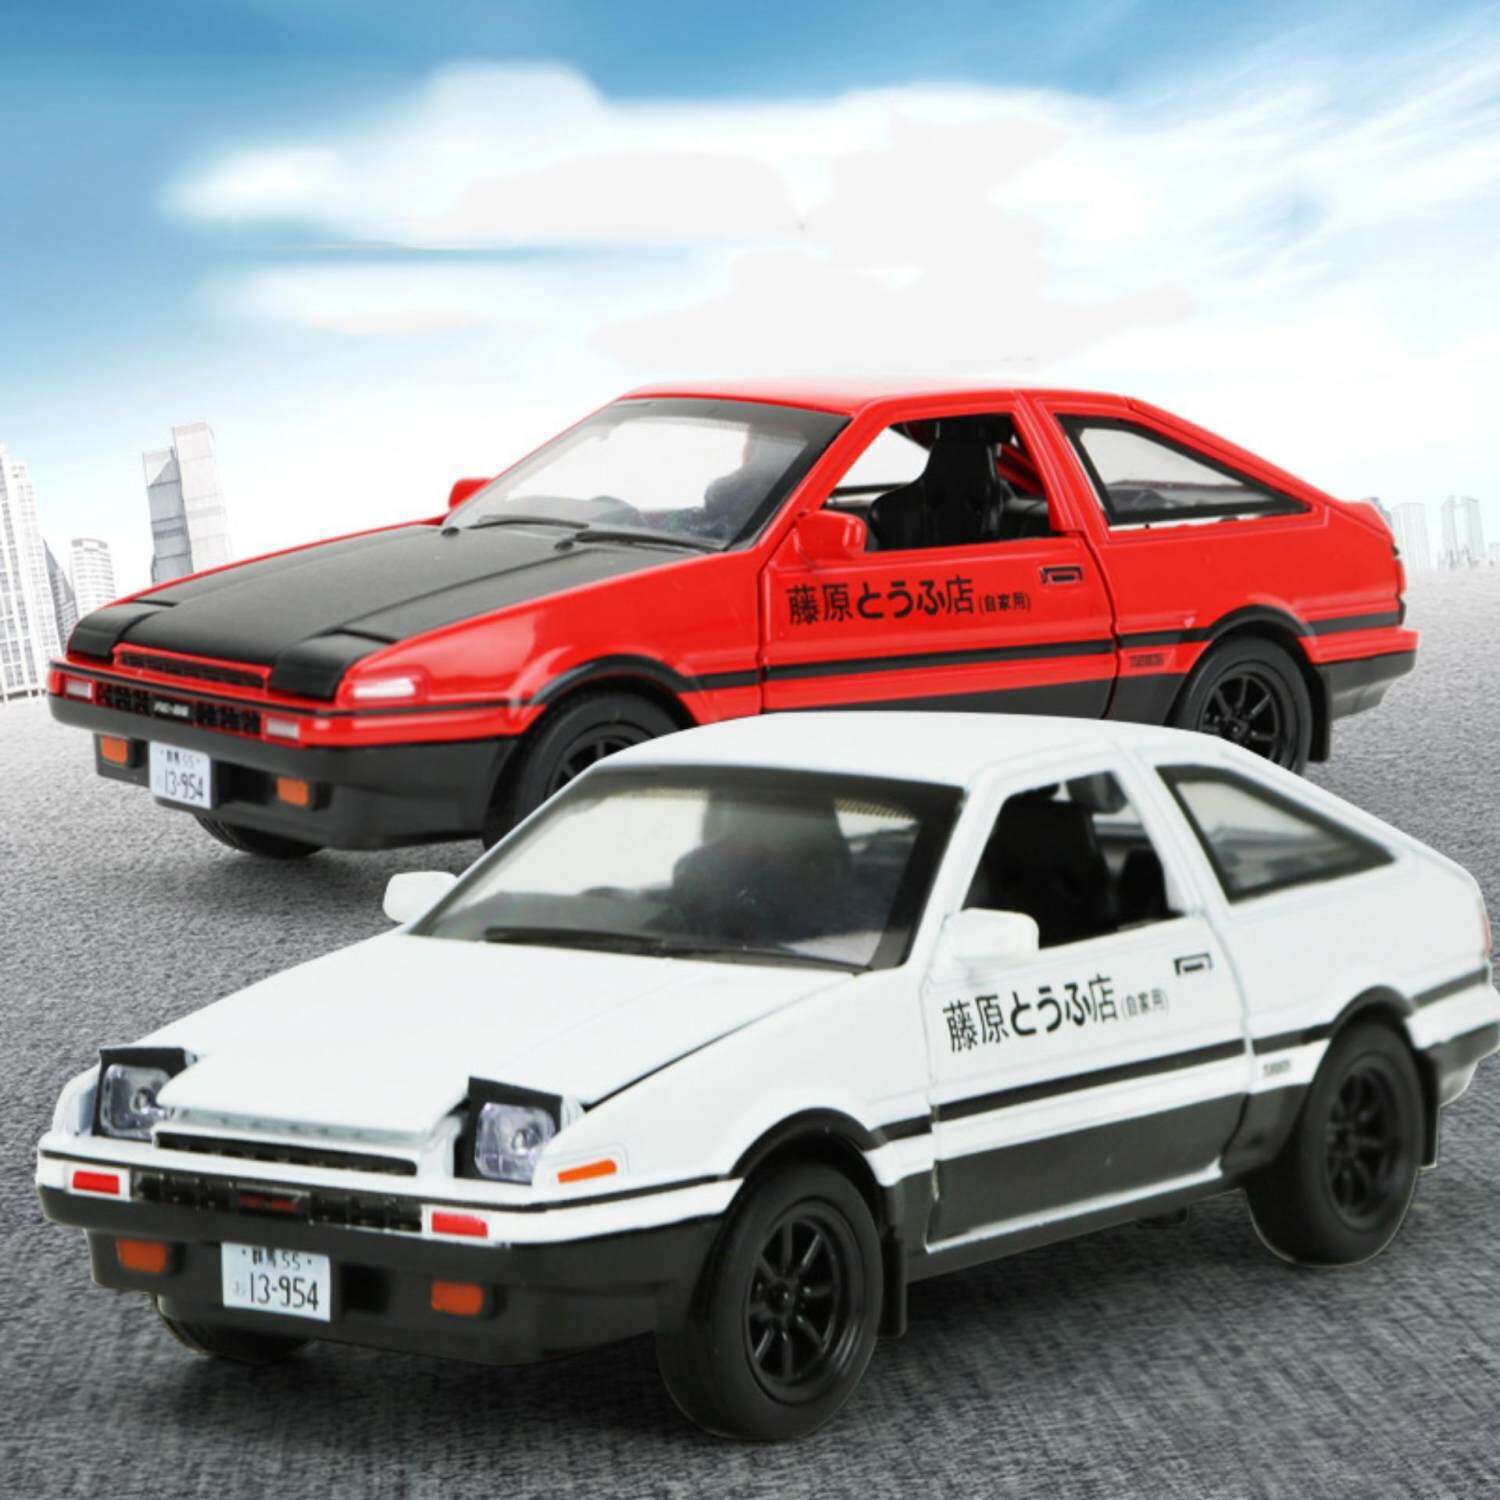 Sell Initial D Cheapest Best Quality My Store Skyline Gt Rr32 No 141 Dream Tomica Myr 79